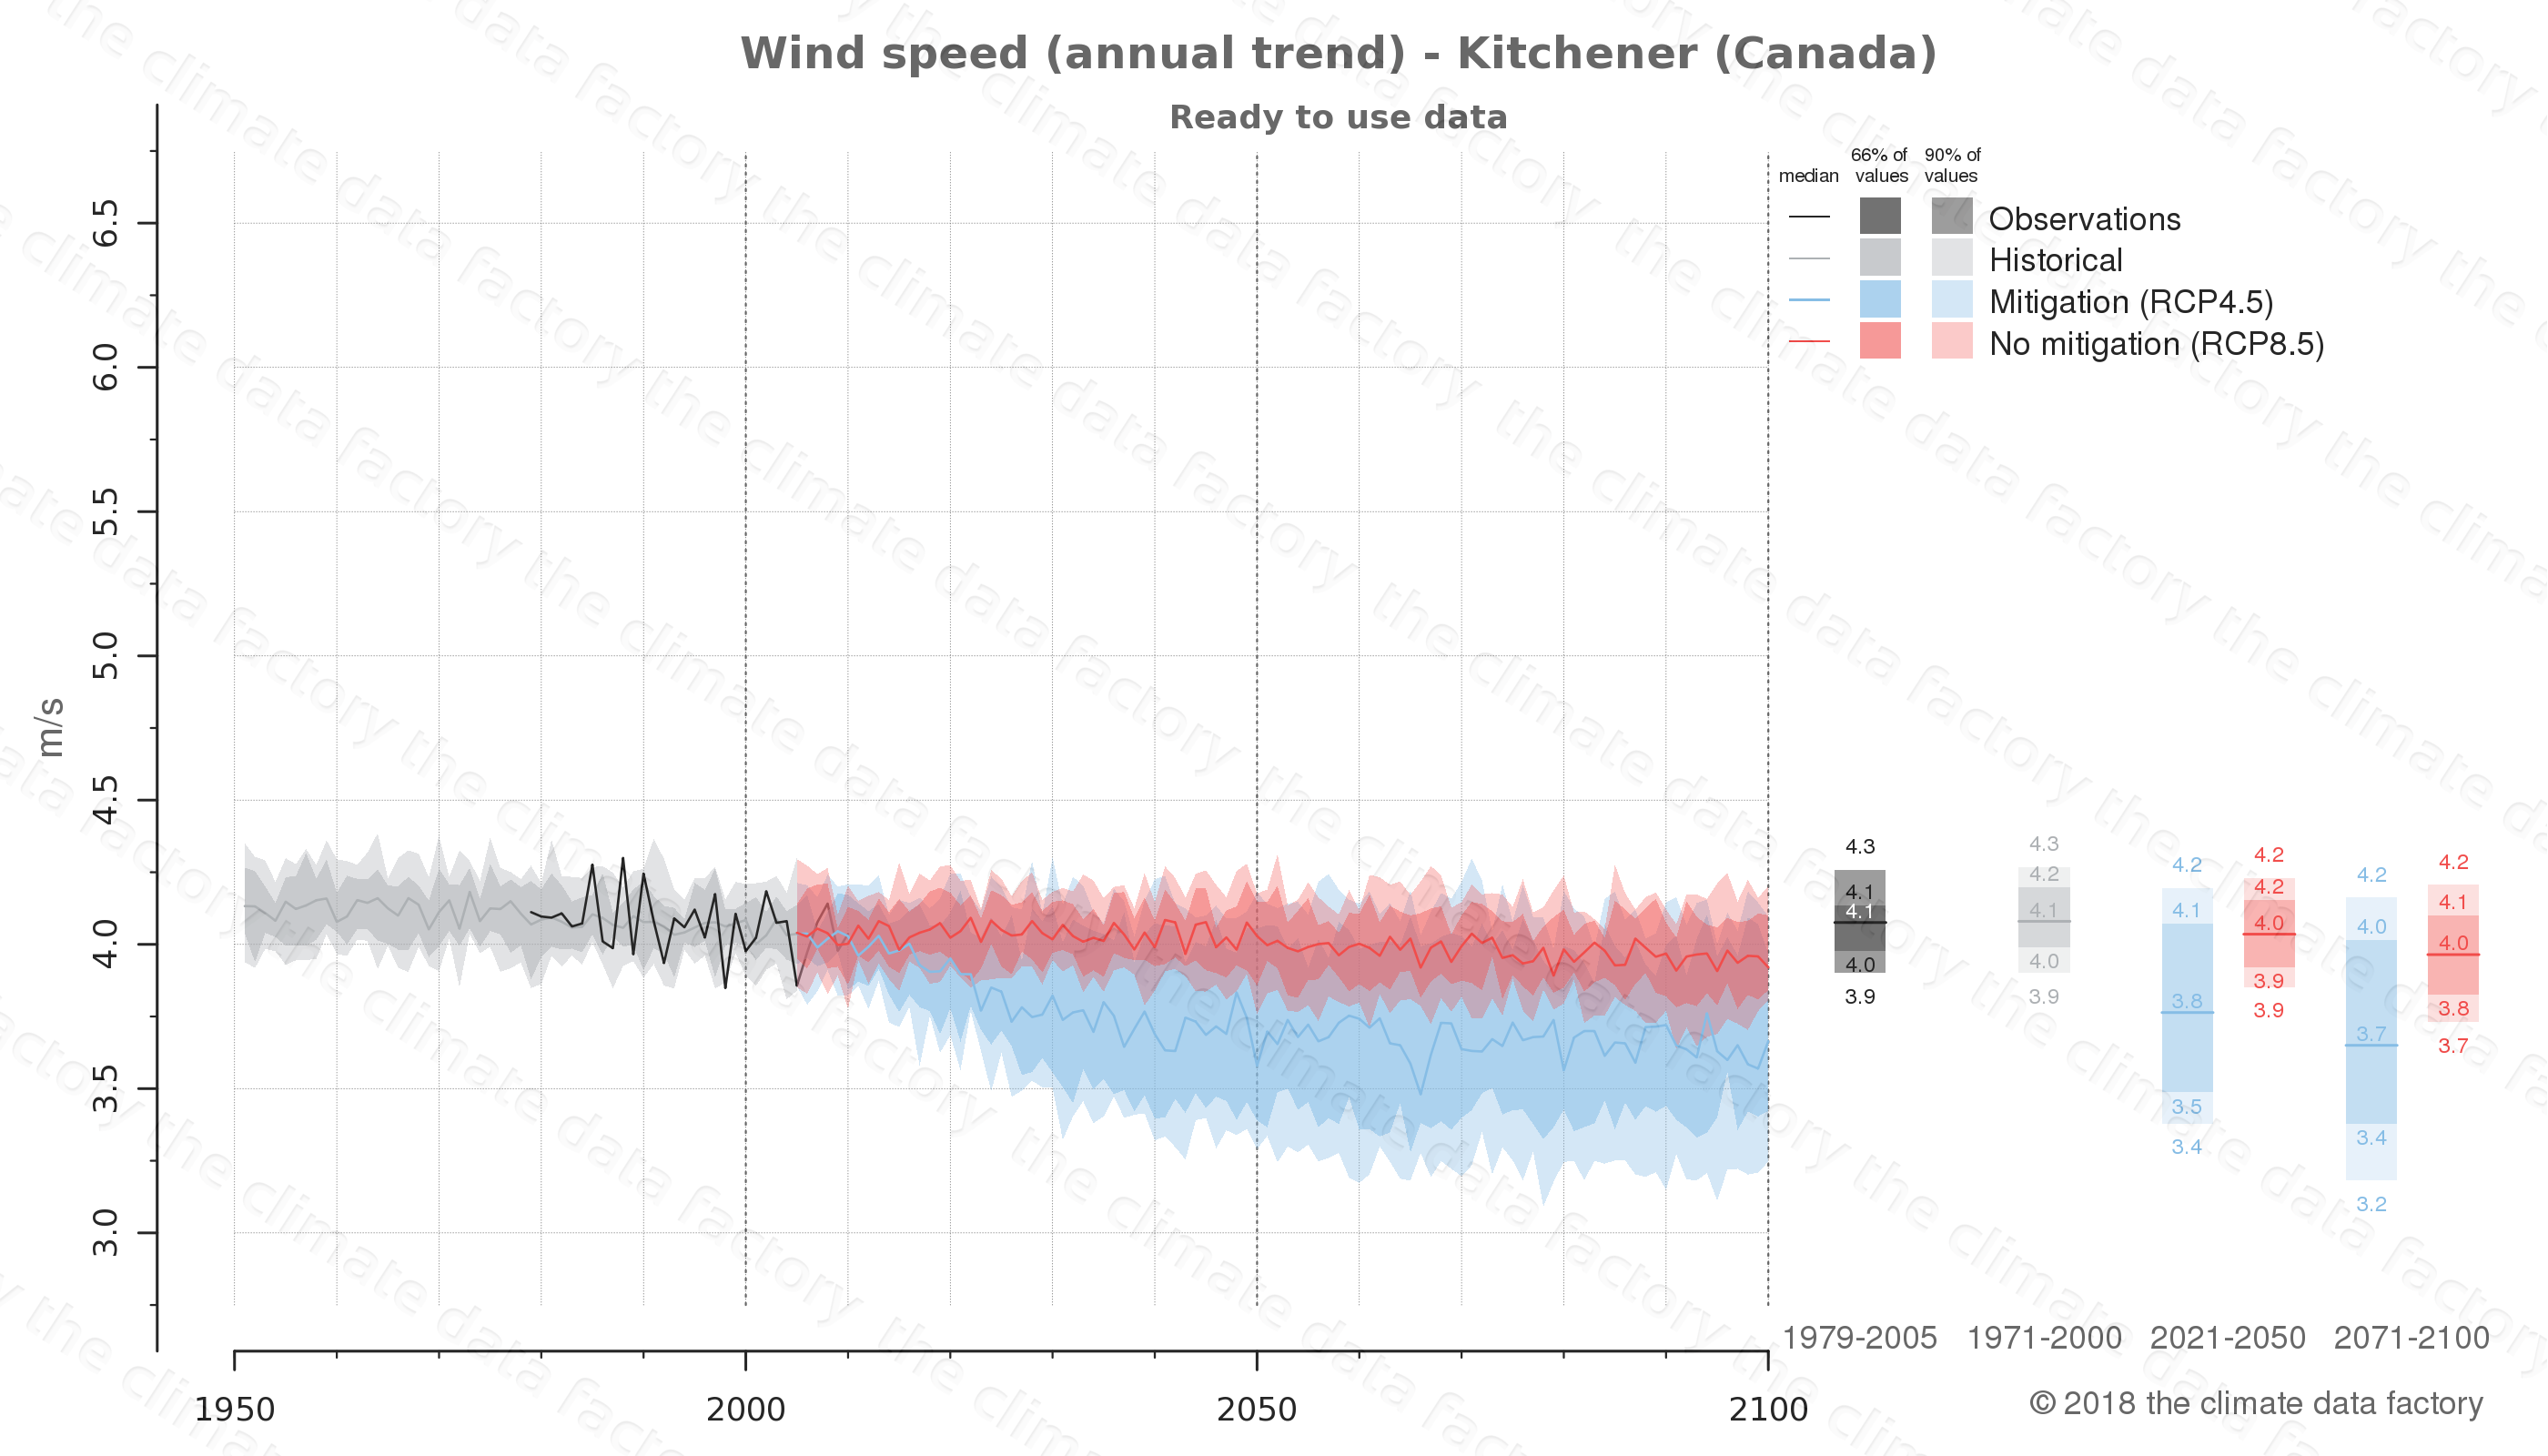 climate change data policy adaptation climate graph city data wind-speed kitchener canada